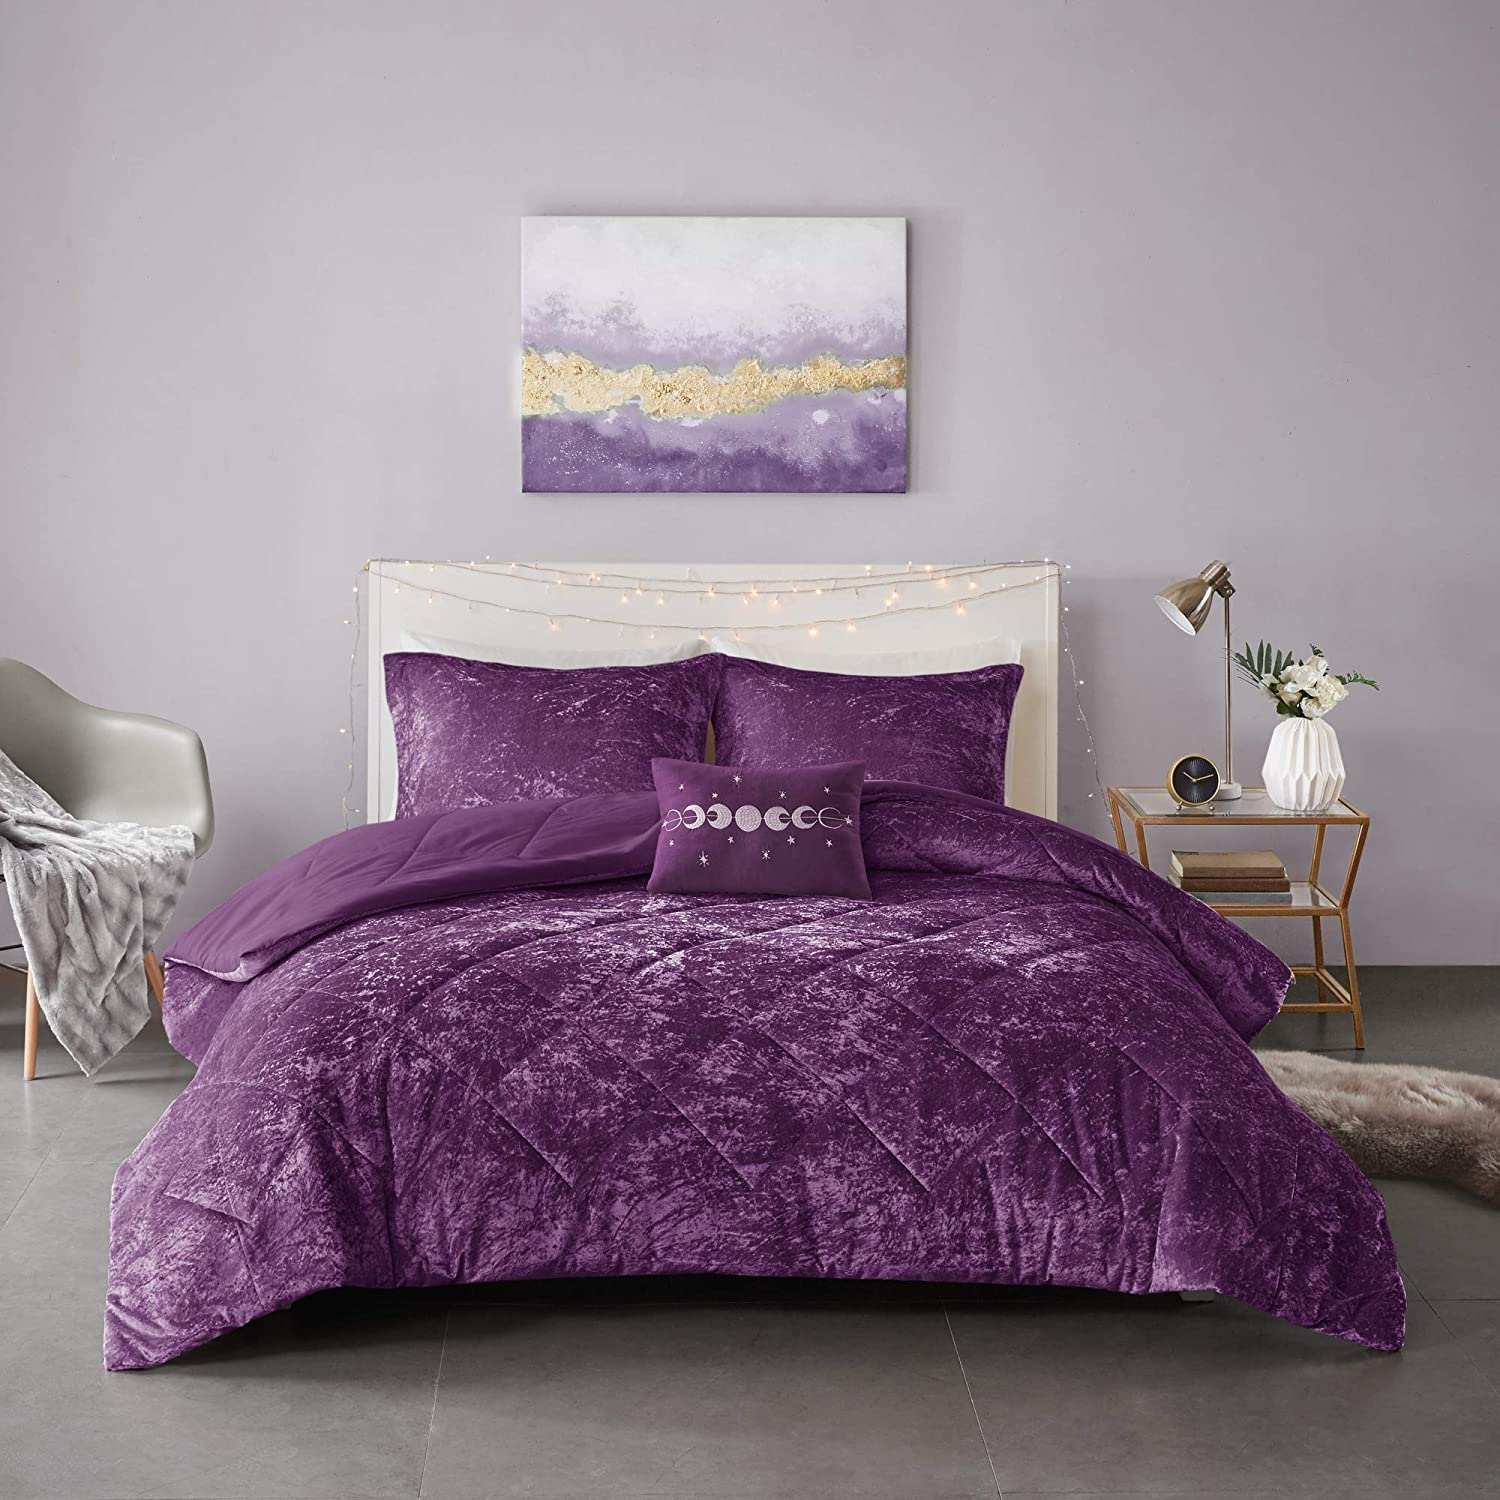 """Intelligent Design Felicia Luxe Comforter Velvet Lush Double Sided Diamond Quilting Modern All Season Bedding Set with Matching Sham, Decorative Pillow, Full/Queen(90""""x90""""), Purple"""